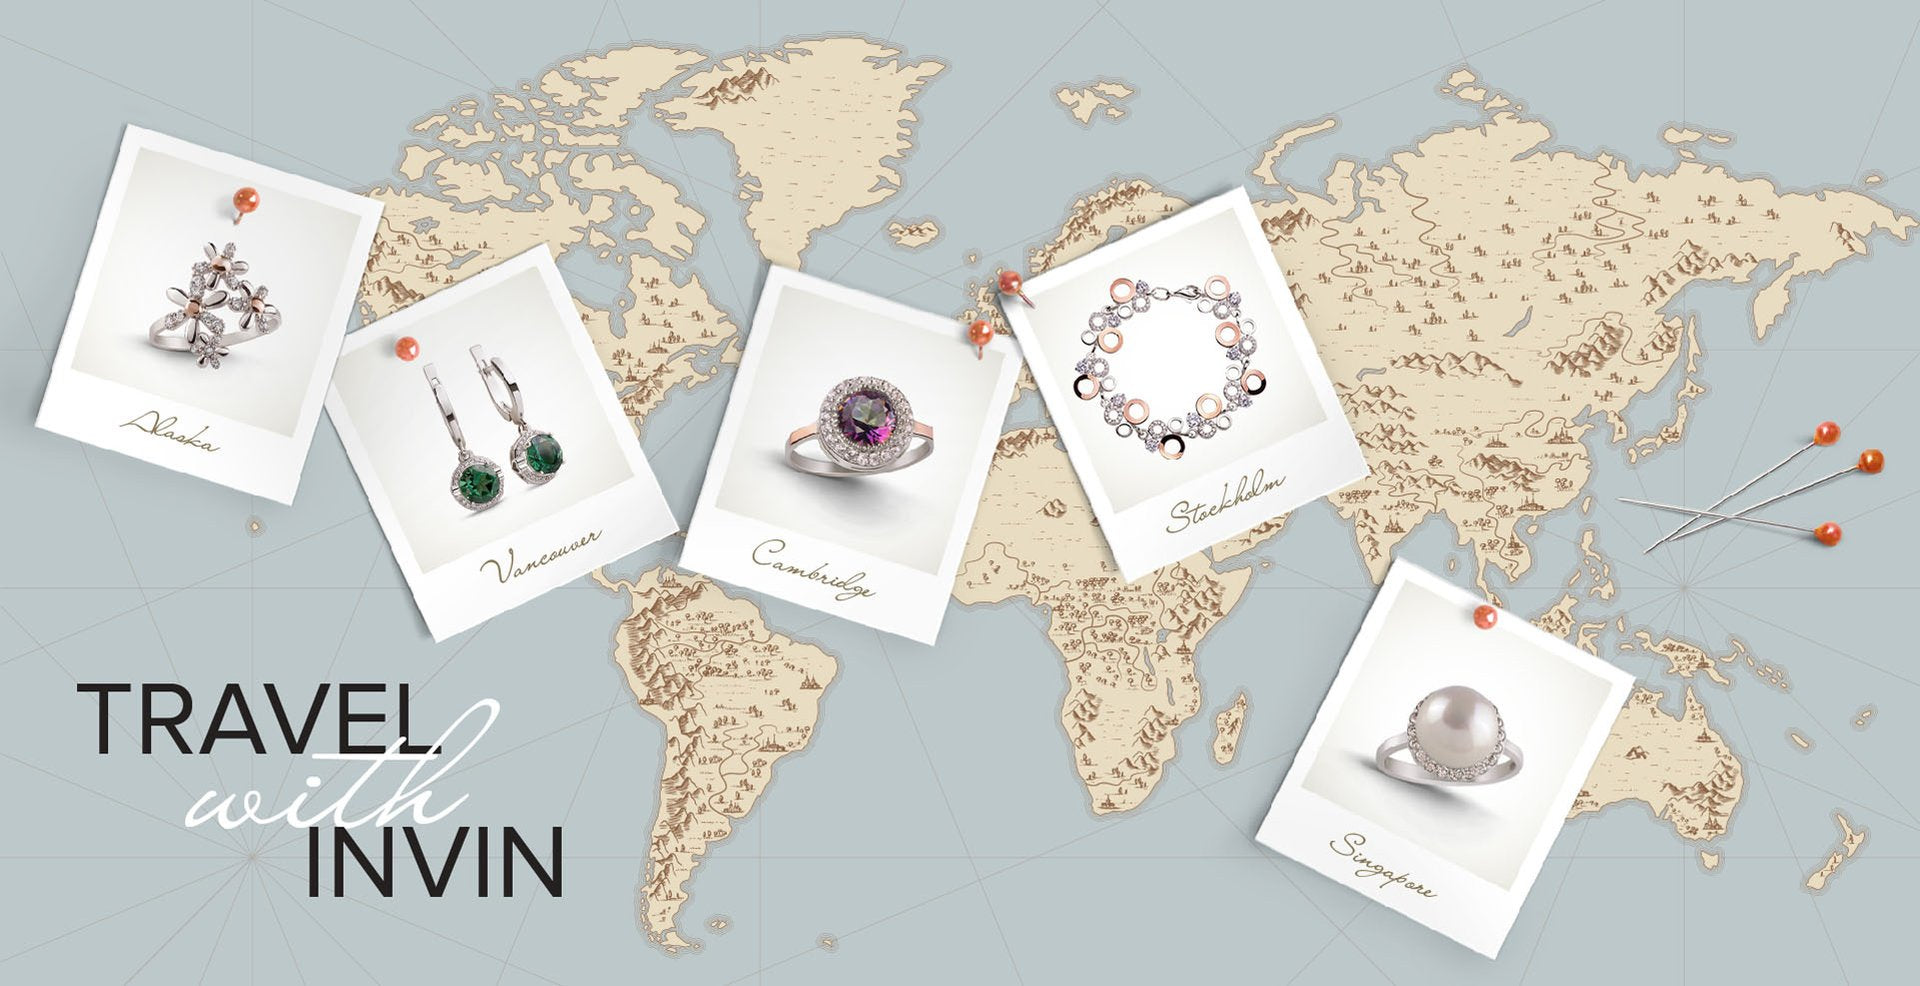 INVIN travel and jewelry